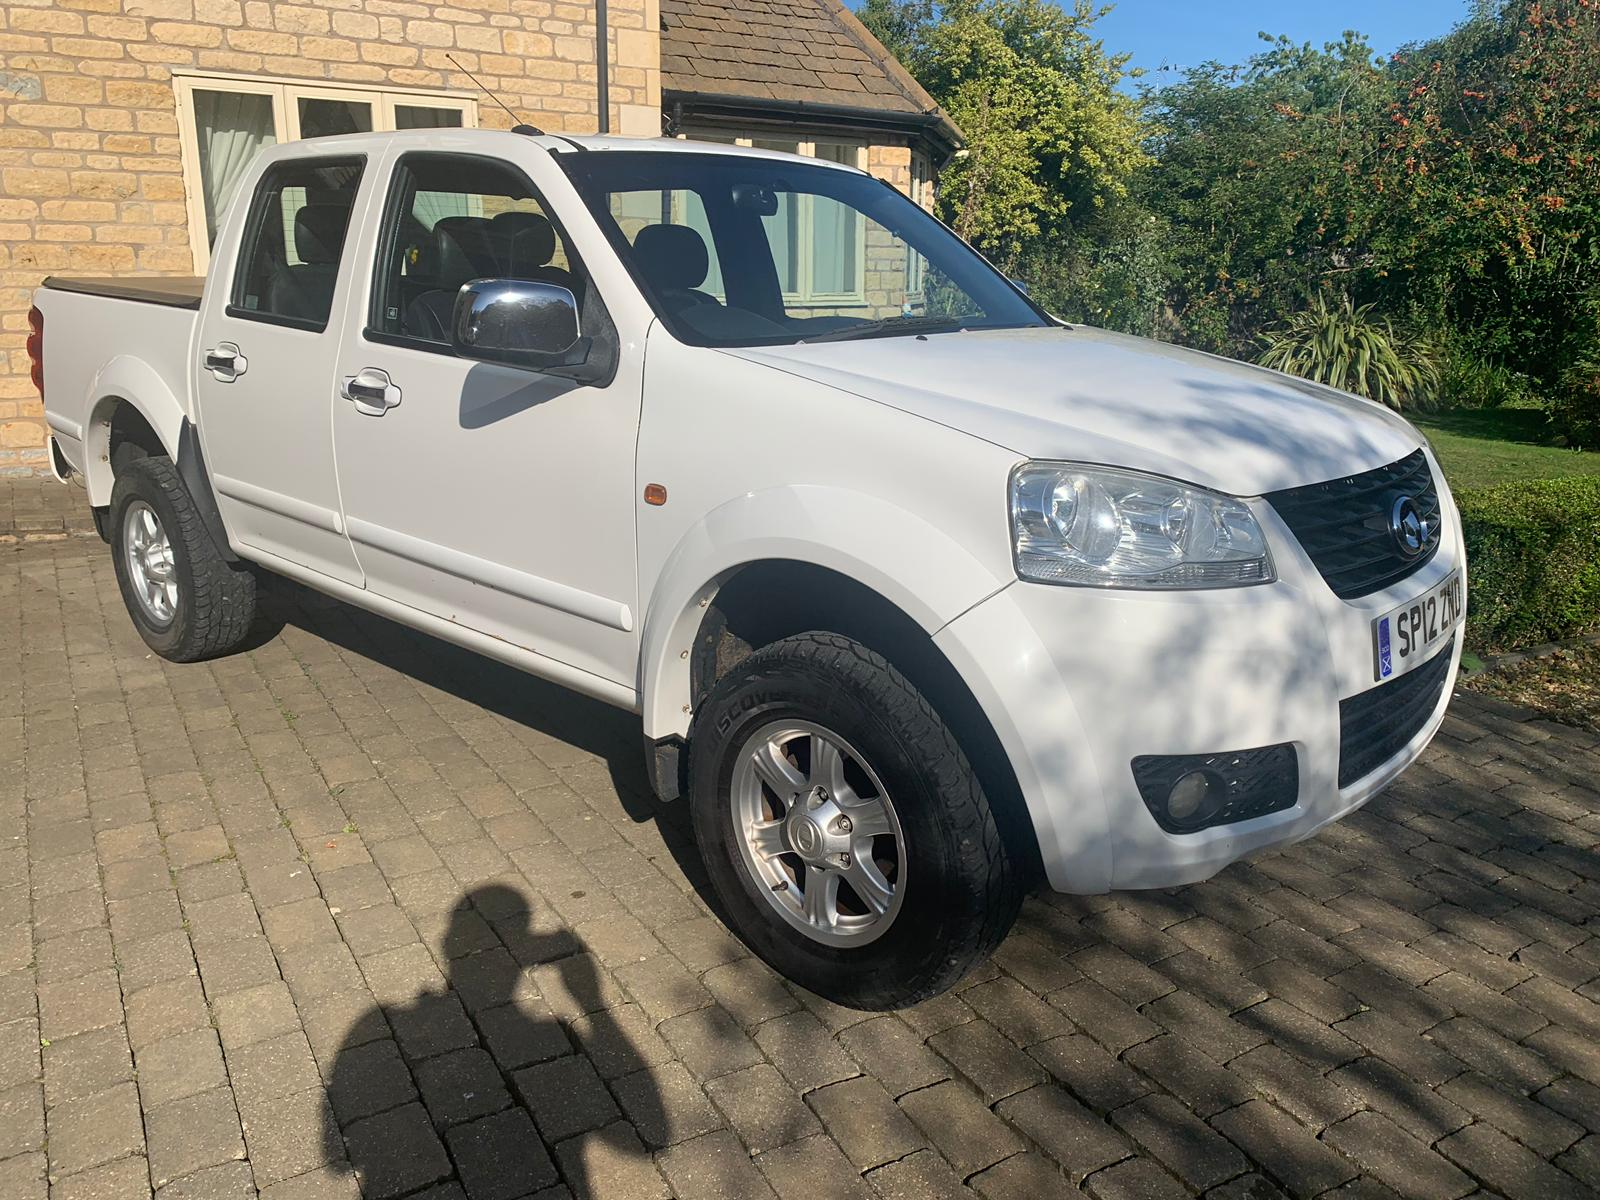 2012 Great Wall Steed Double Cab 2.2 Turbo Diesel